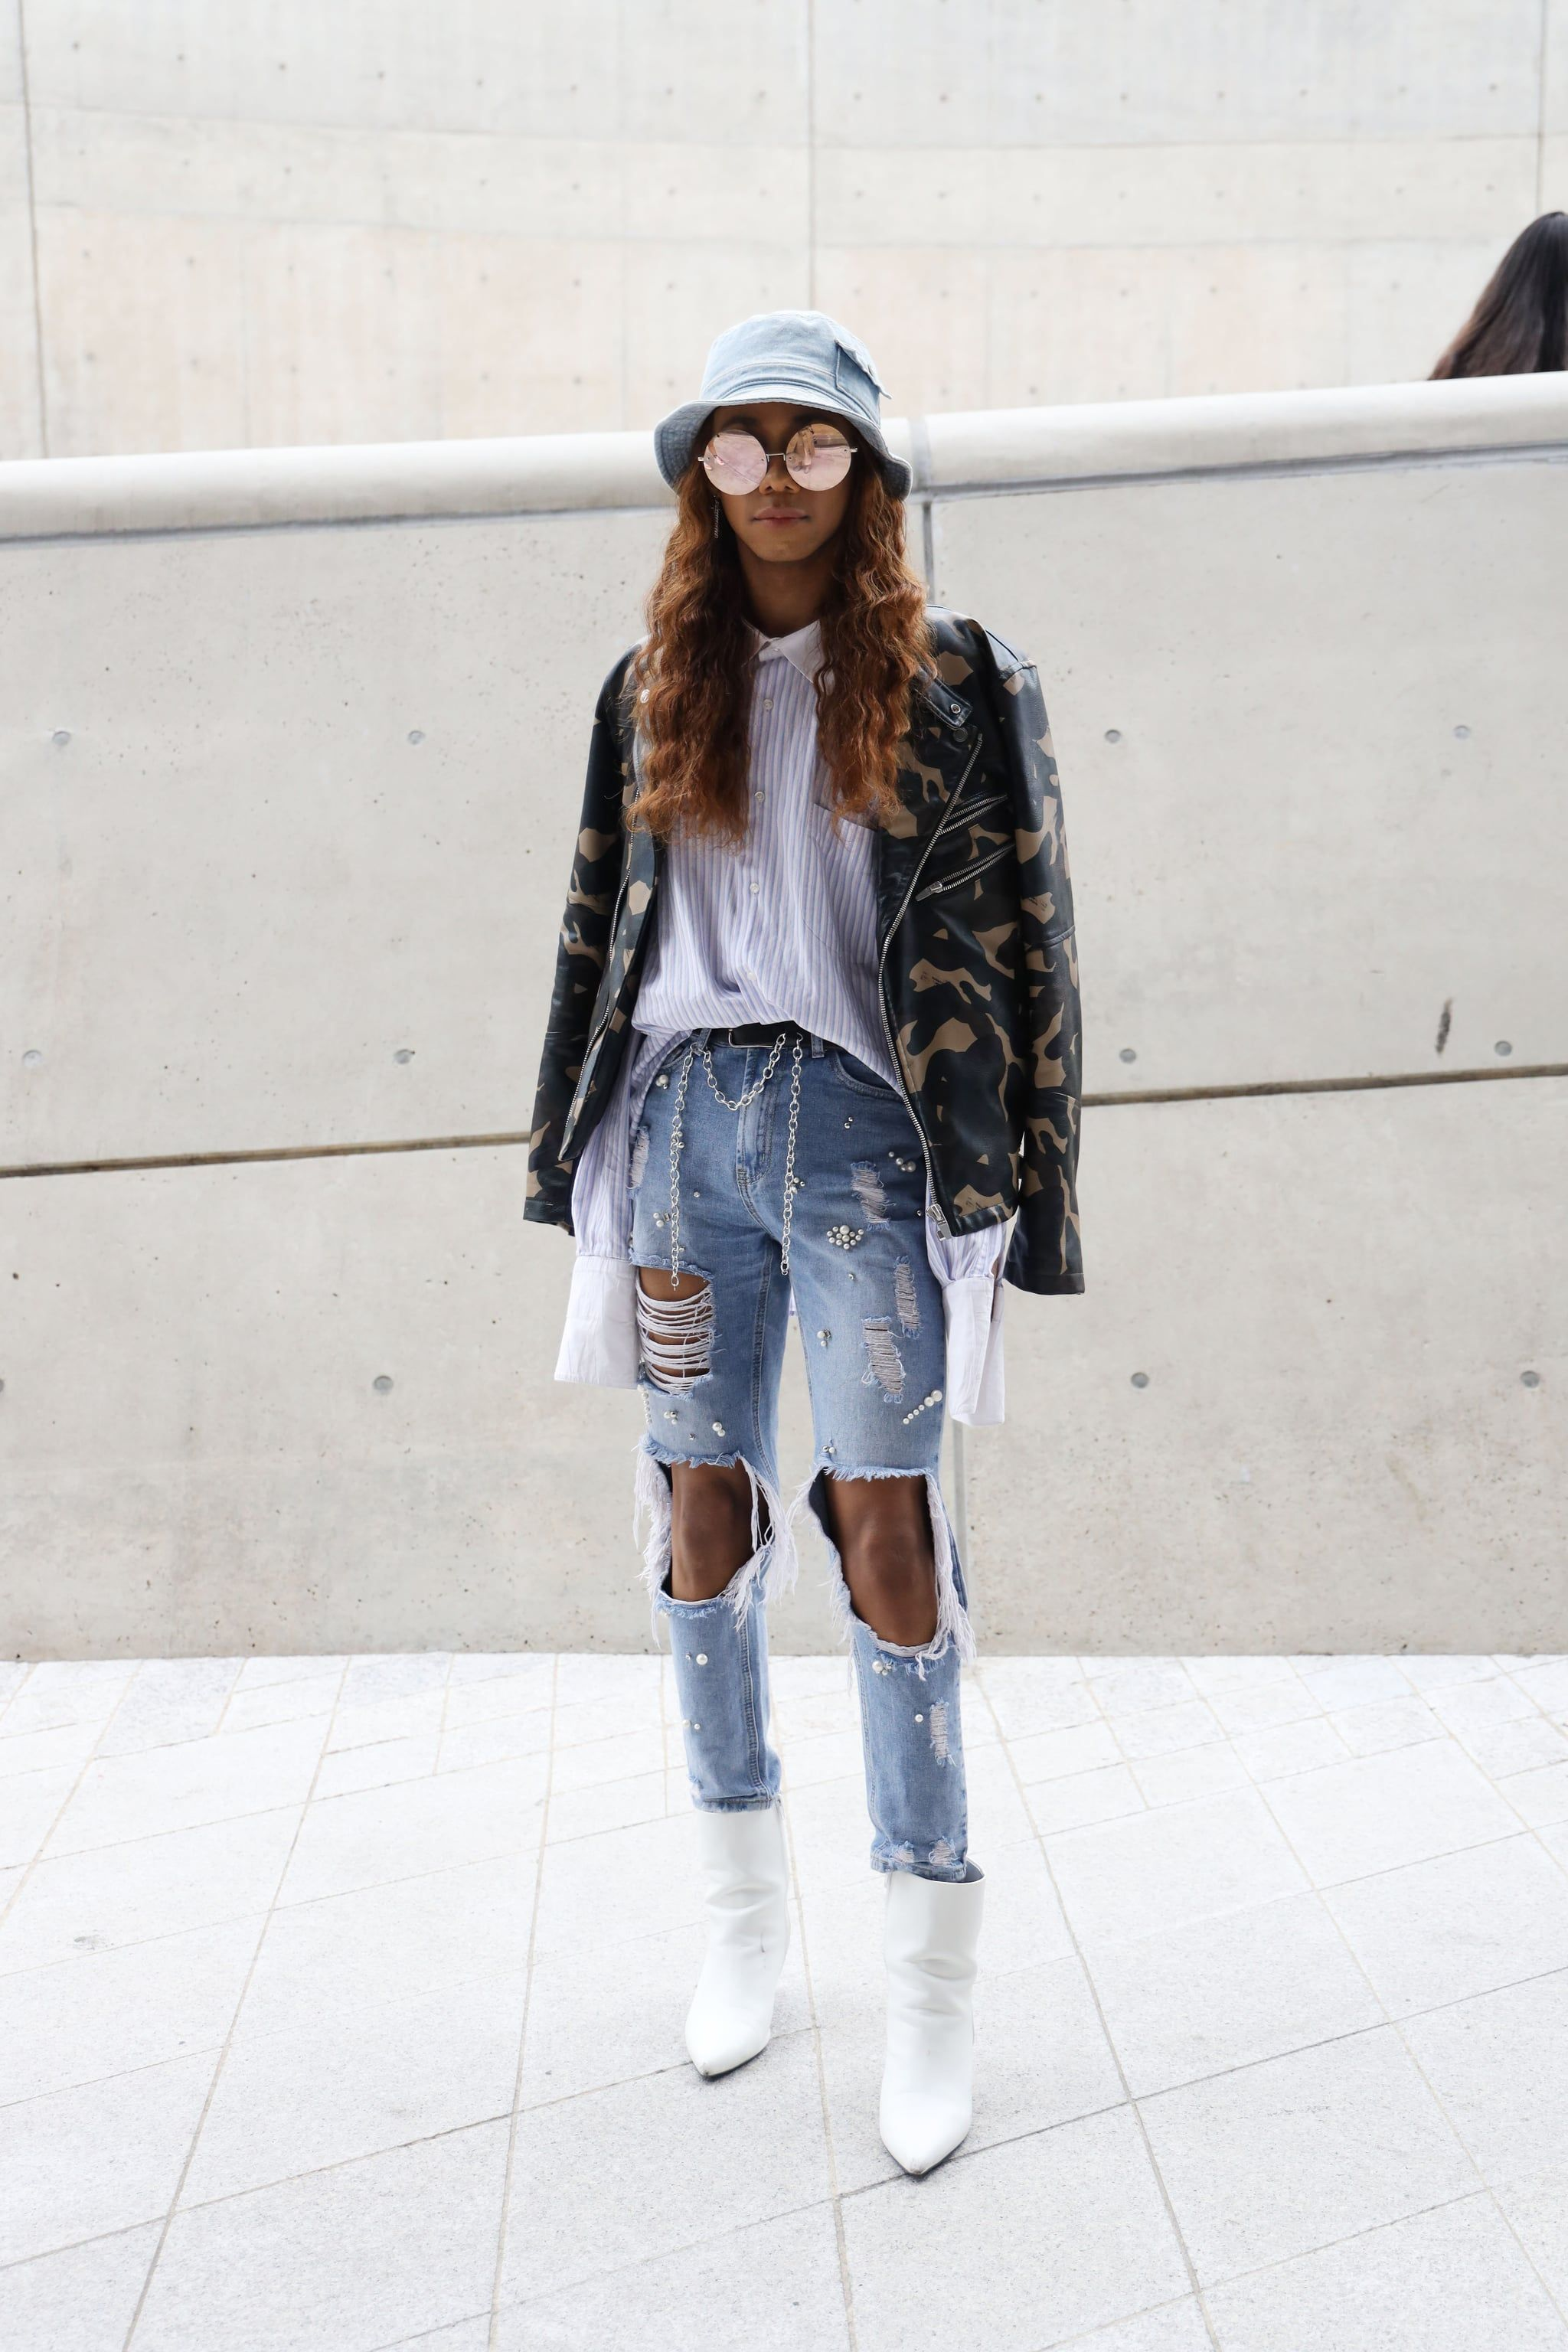 74b734c7448ea Edge up distressed jeans with a camo jacket and coordinating bucket hat.